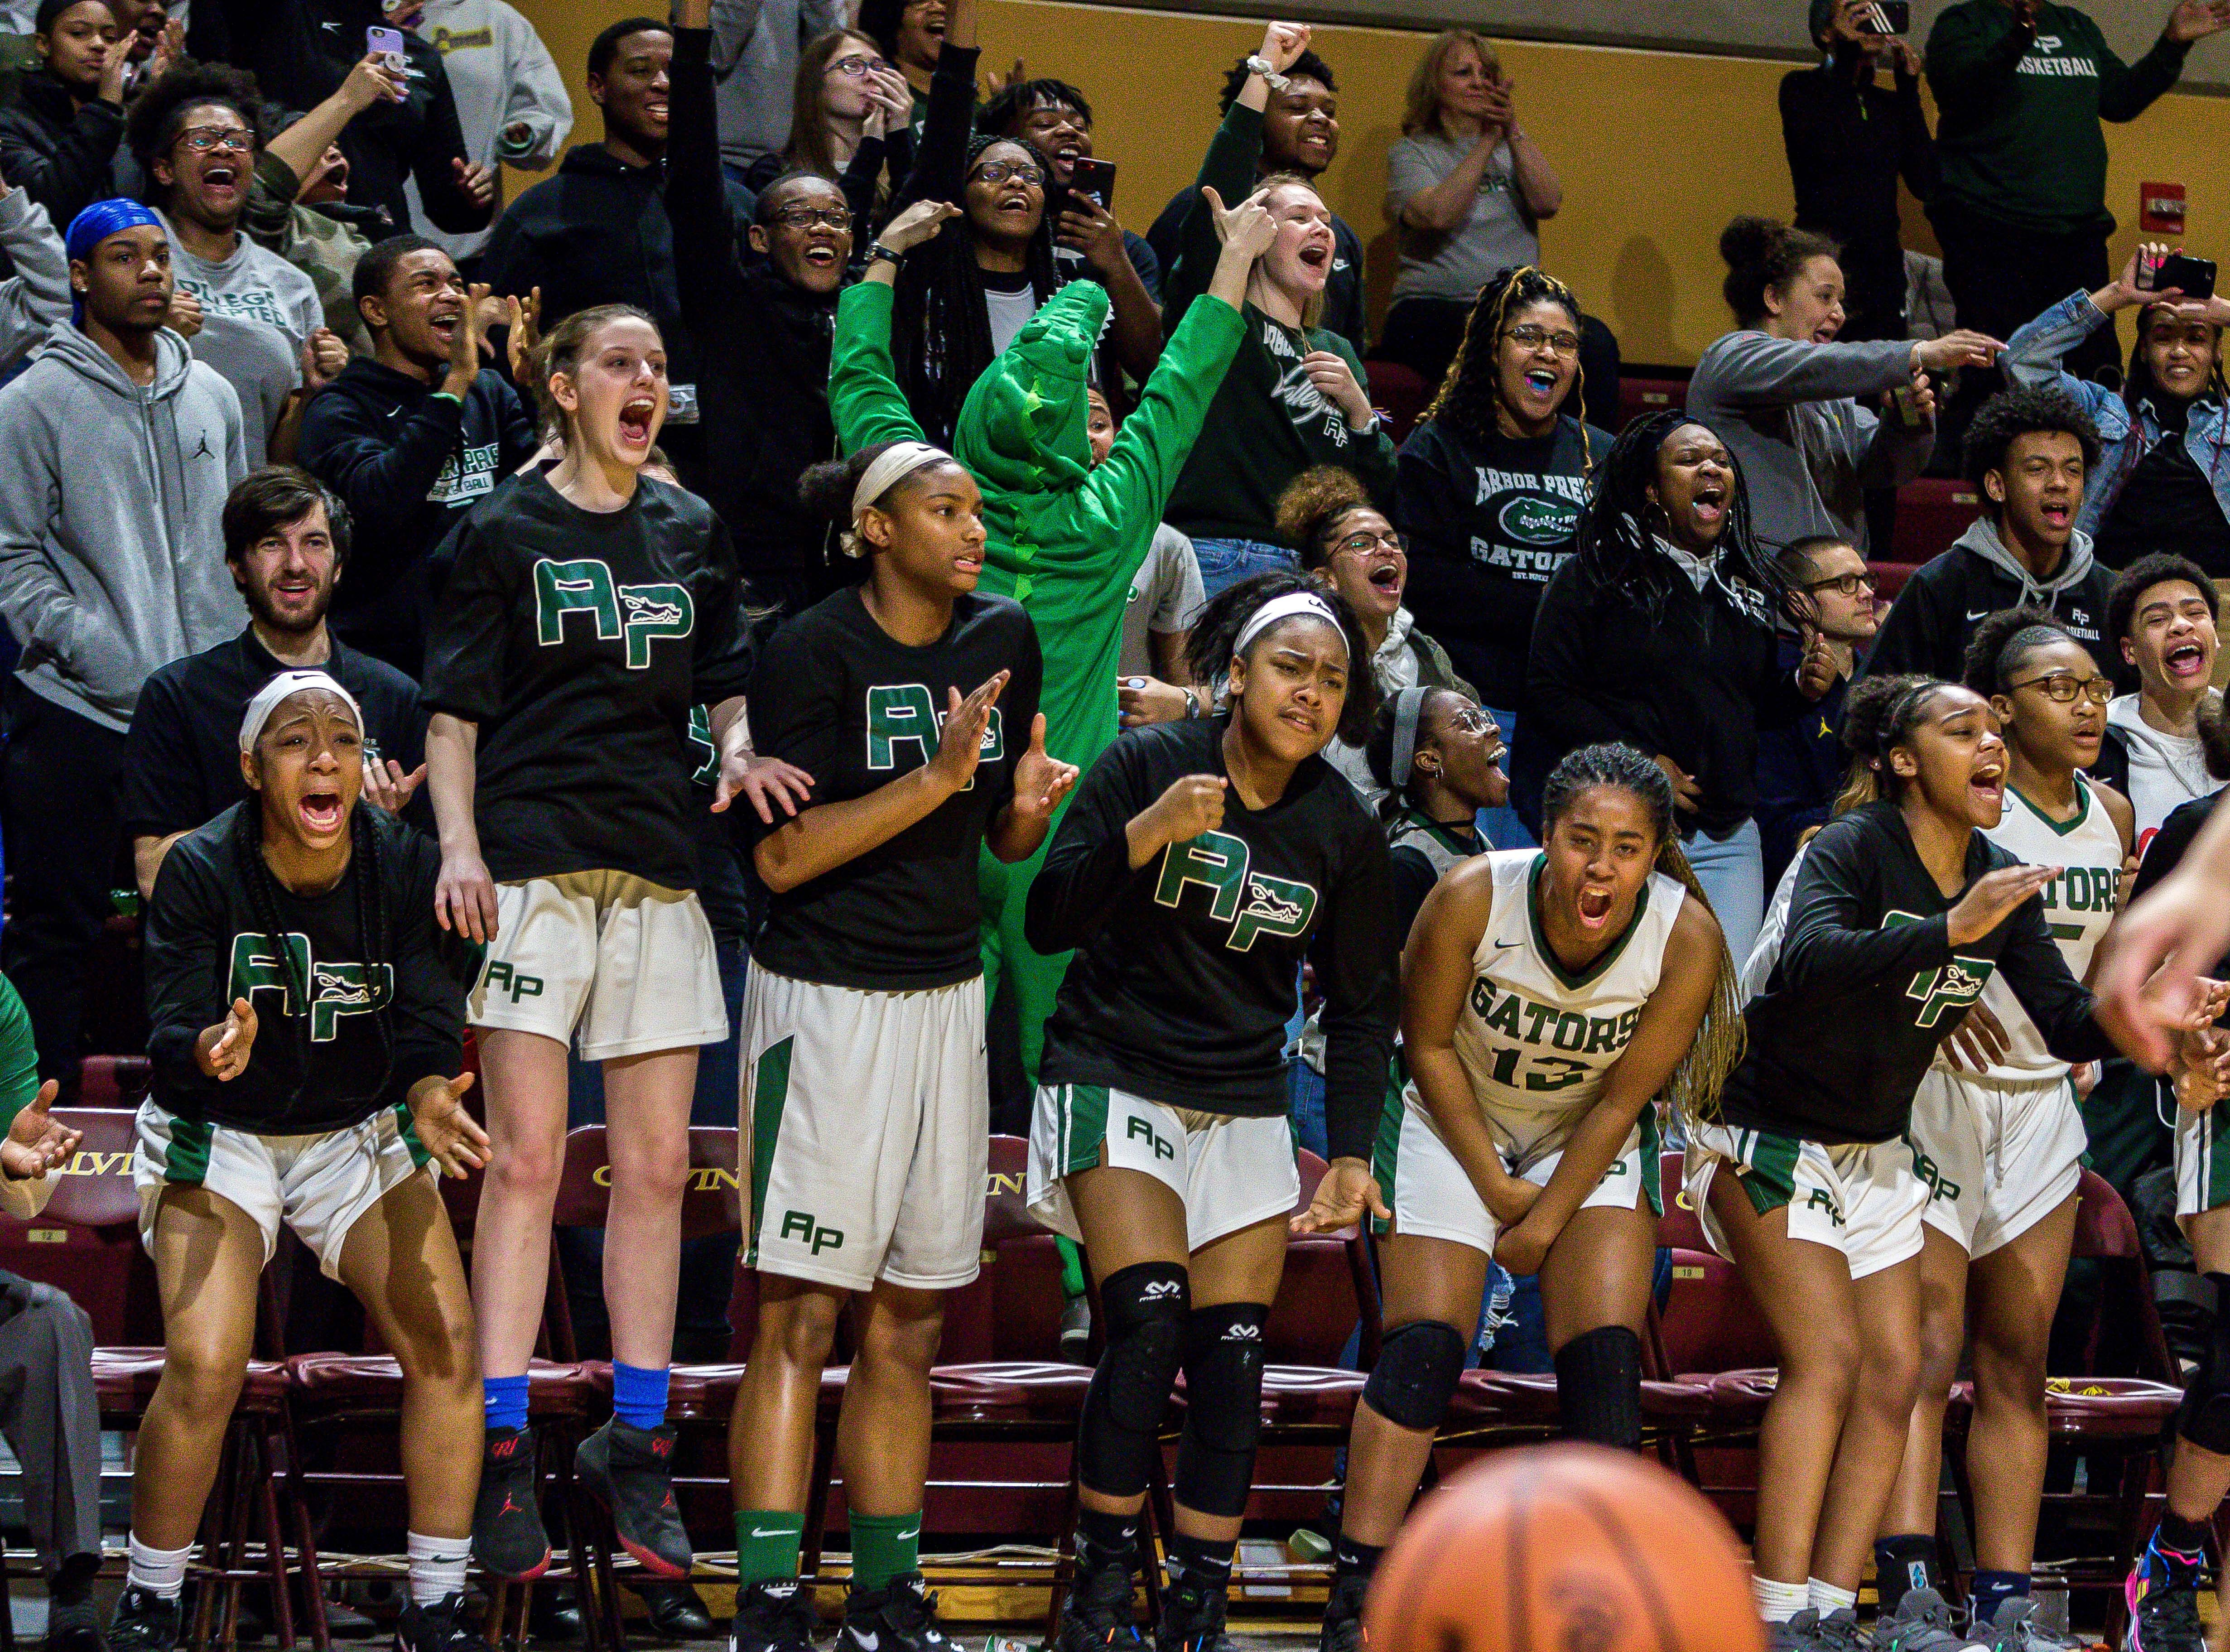 Ypsilanti Arbor Prep's bench and crowd react in overtime.